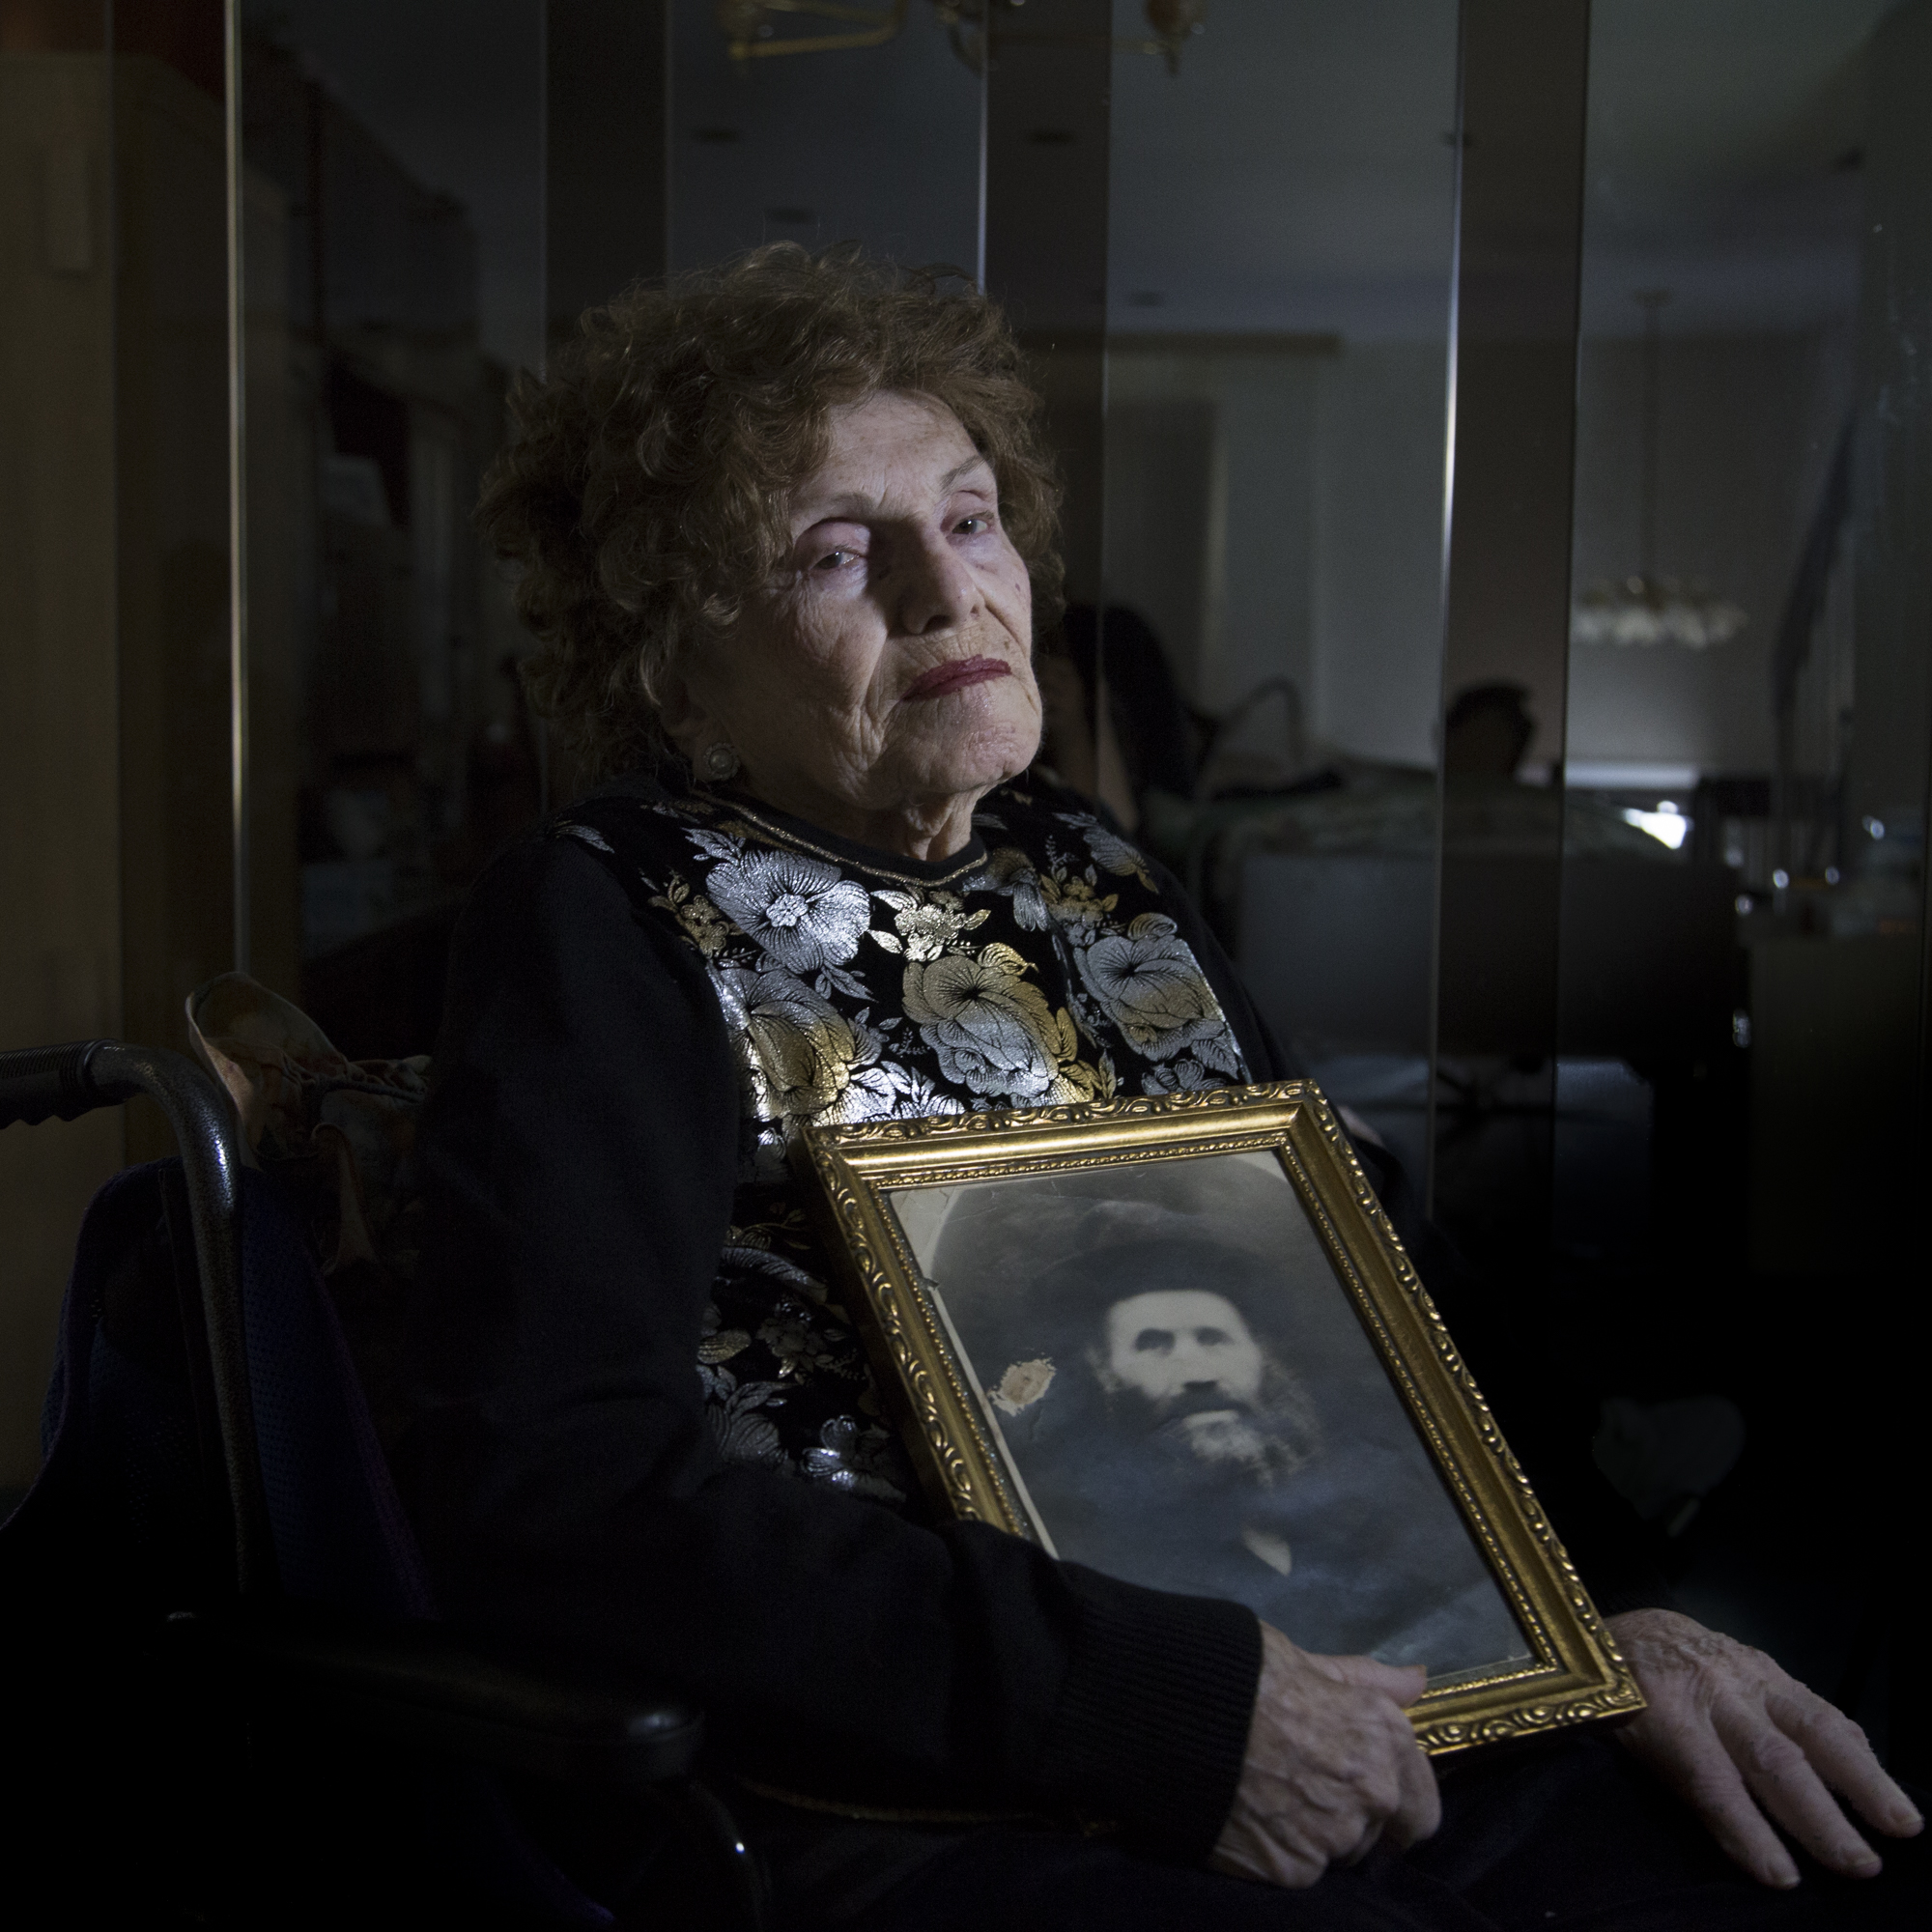 Portrait of Auschwitz survivorRachelGottliebholding a photo of her father. The last time she saw him, she handed him his tallis (prayer shawl) and tefilin (a prayer leather box containing verses of the Torah inscribed on parchment) in the Dragomiresti ghetto. Shortly after, he was killed in the crematorium at the Auschwitz concentration camp.